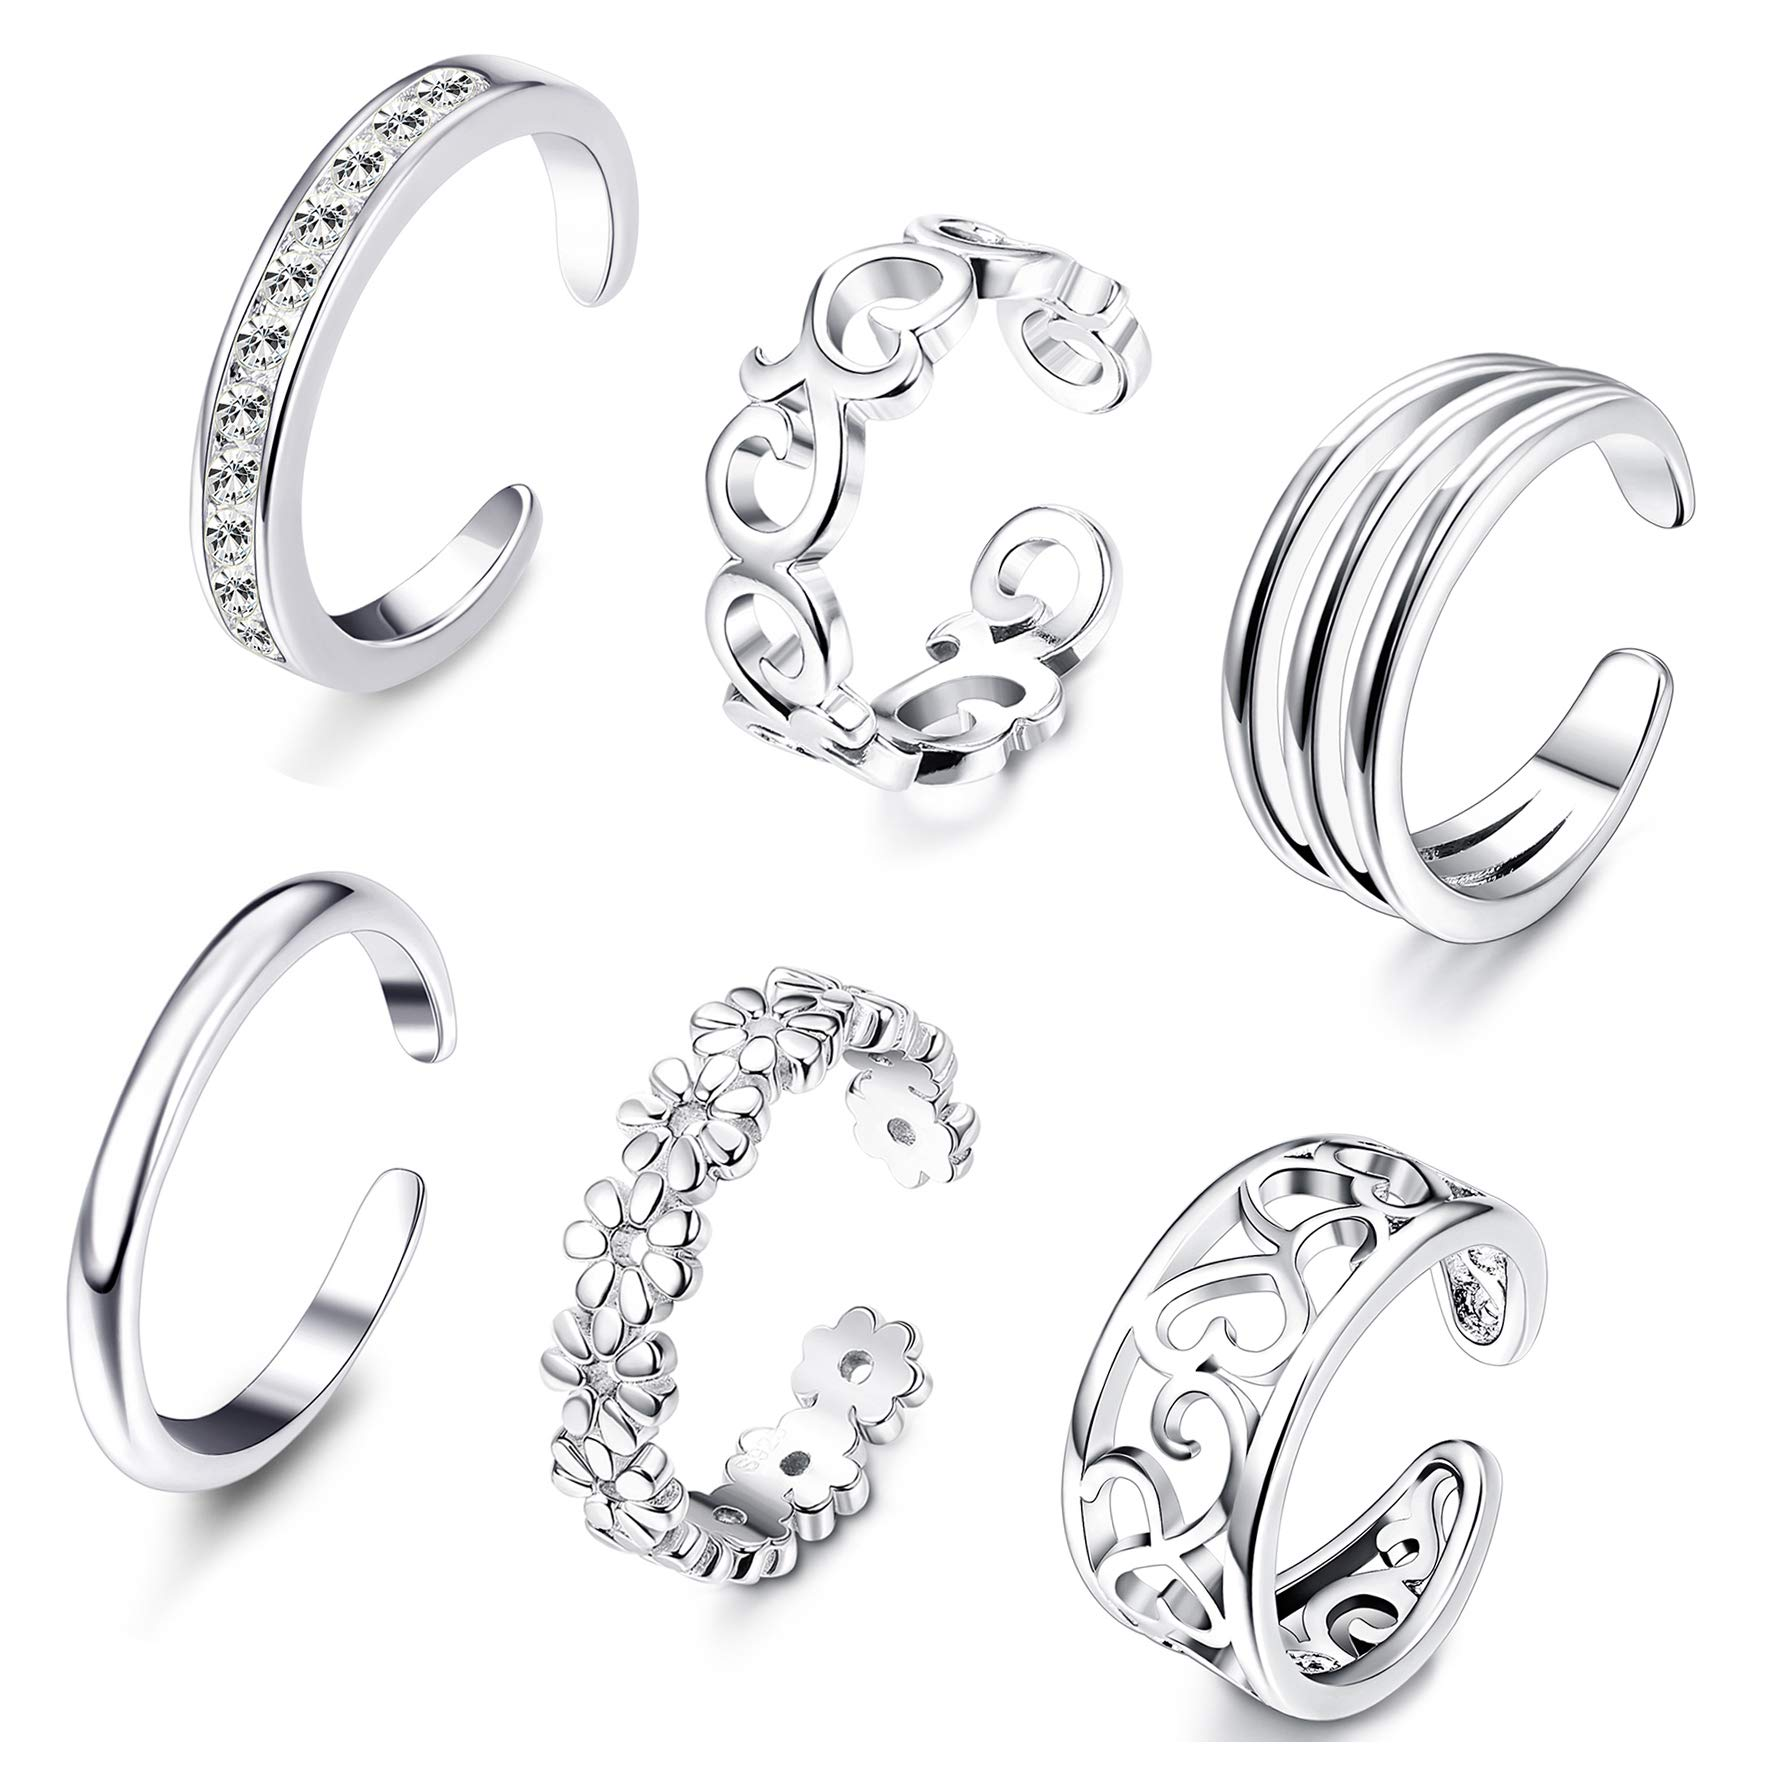 FUNRUN JEWELRY 6PCS Open Toe Ring for Women Girls Adjustable Tail Ring Foot Jewelry